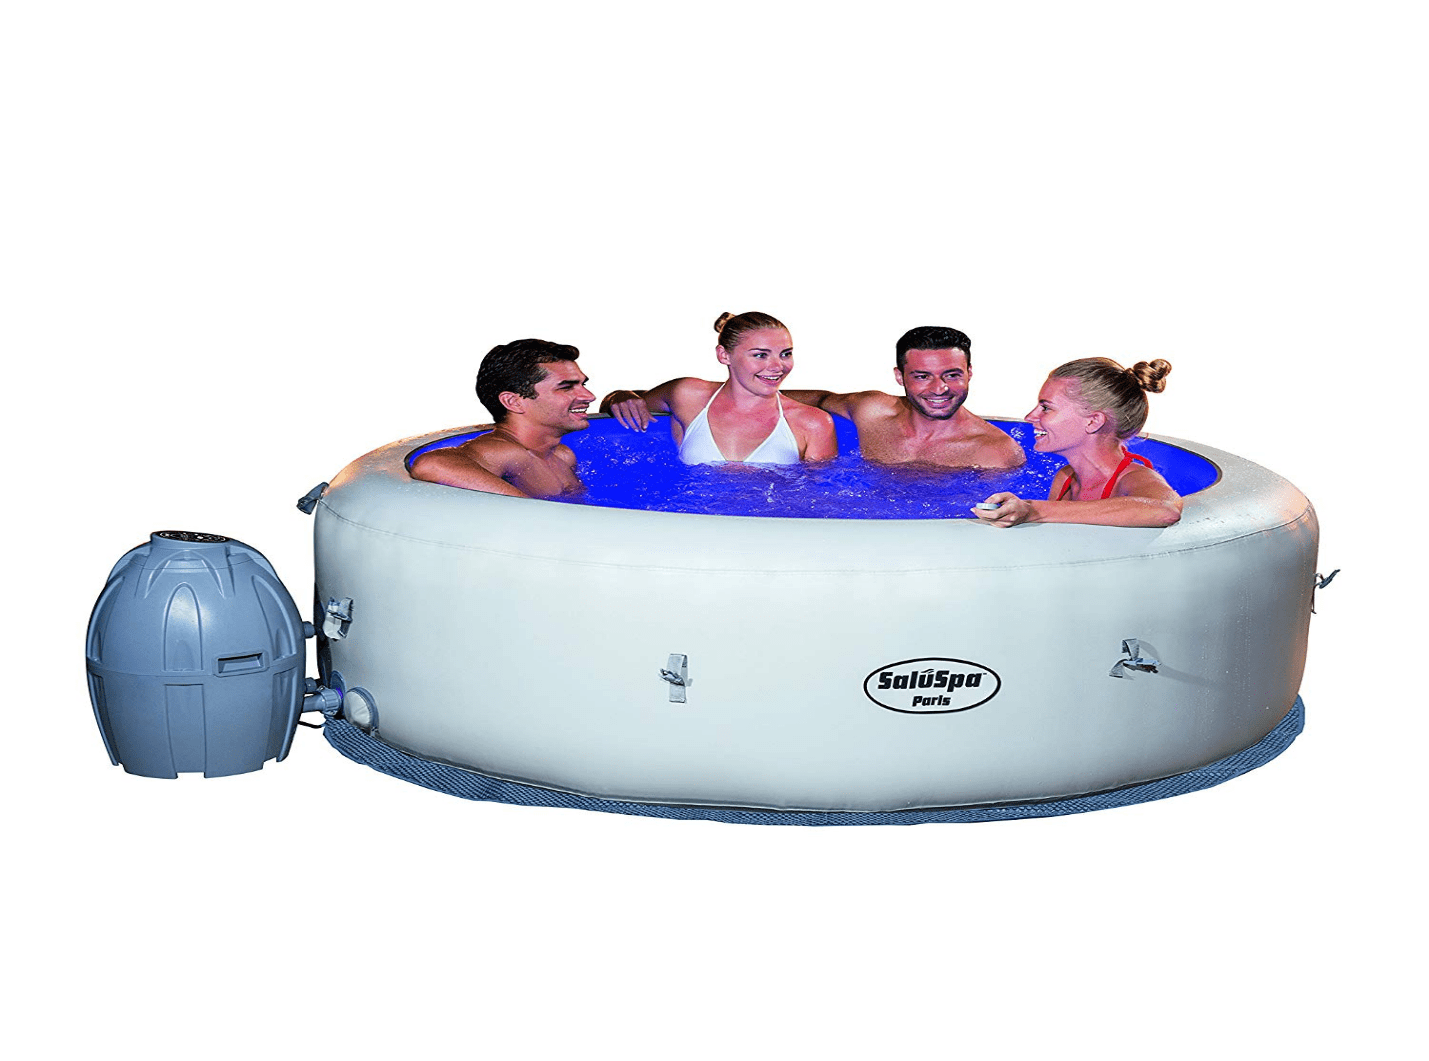 Bestway Paris AirJet Hot Tub | 6 Person Inflatable Hot Tub